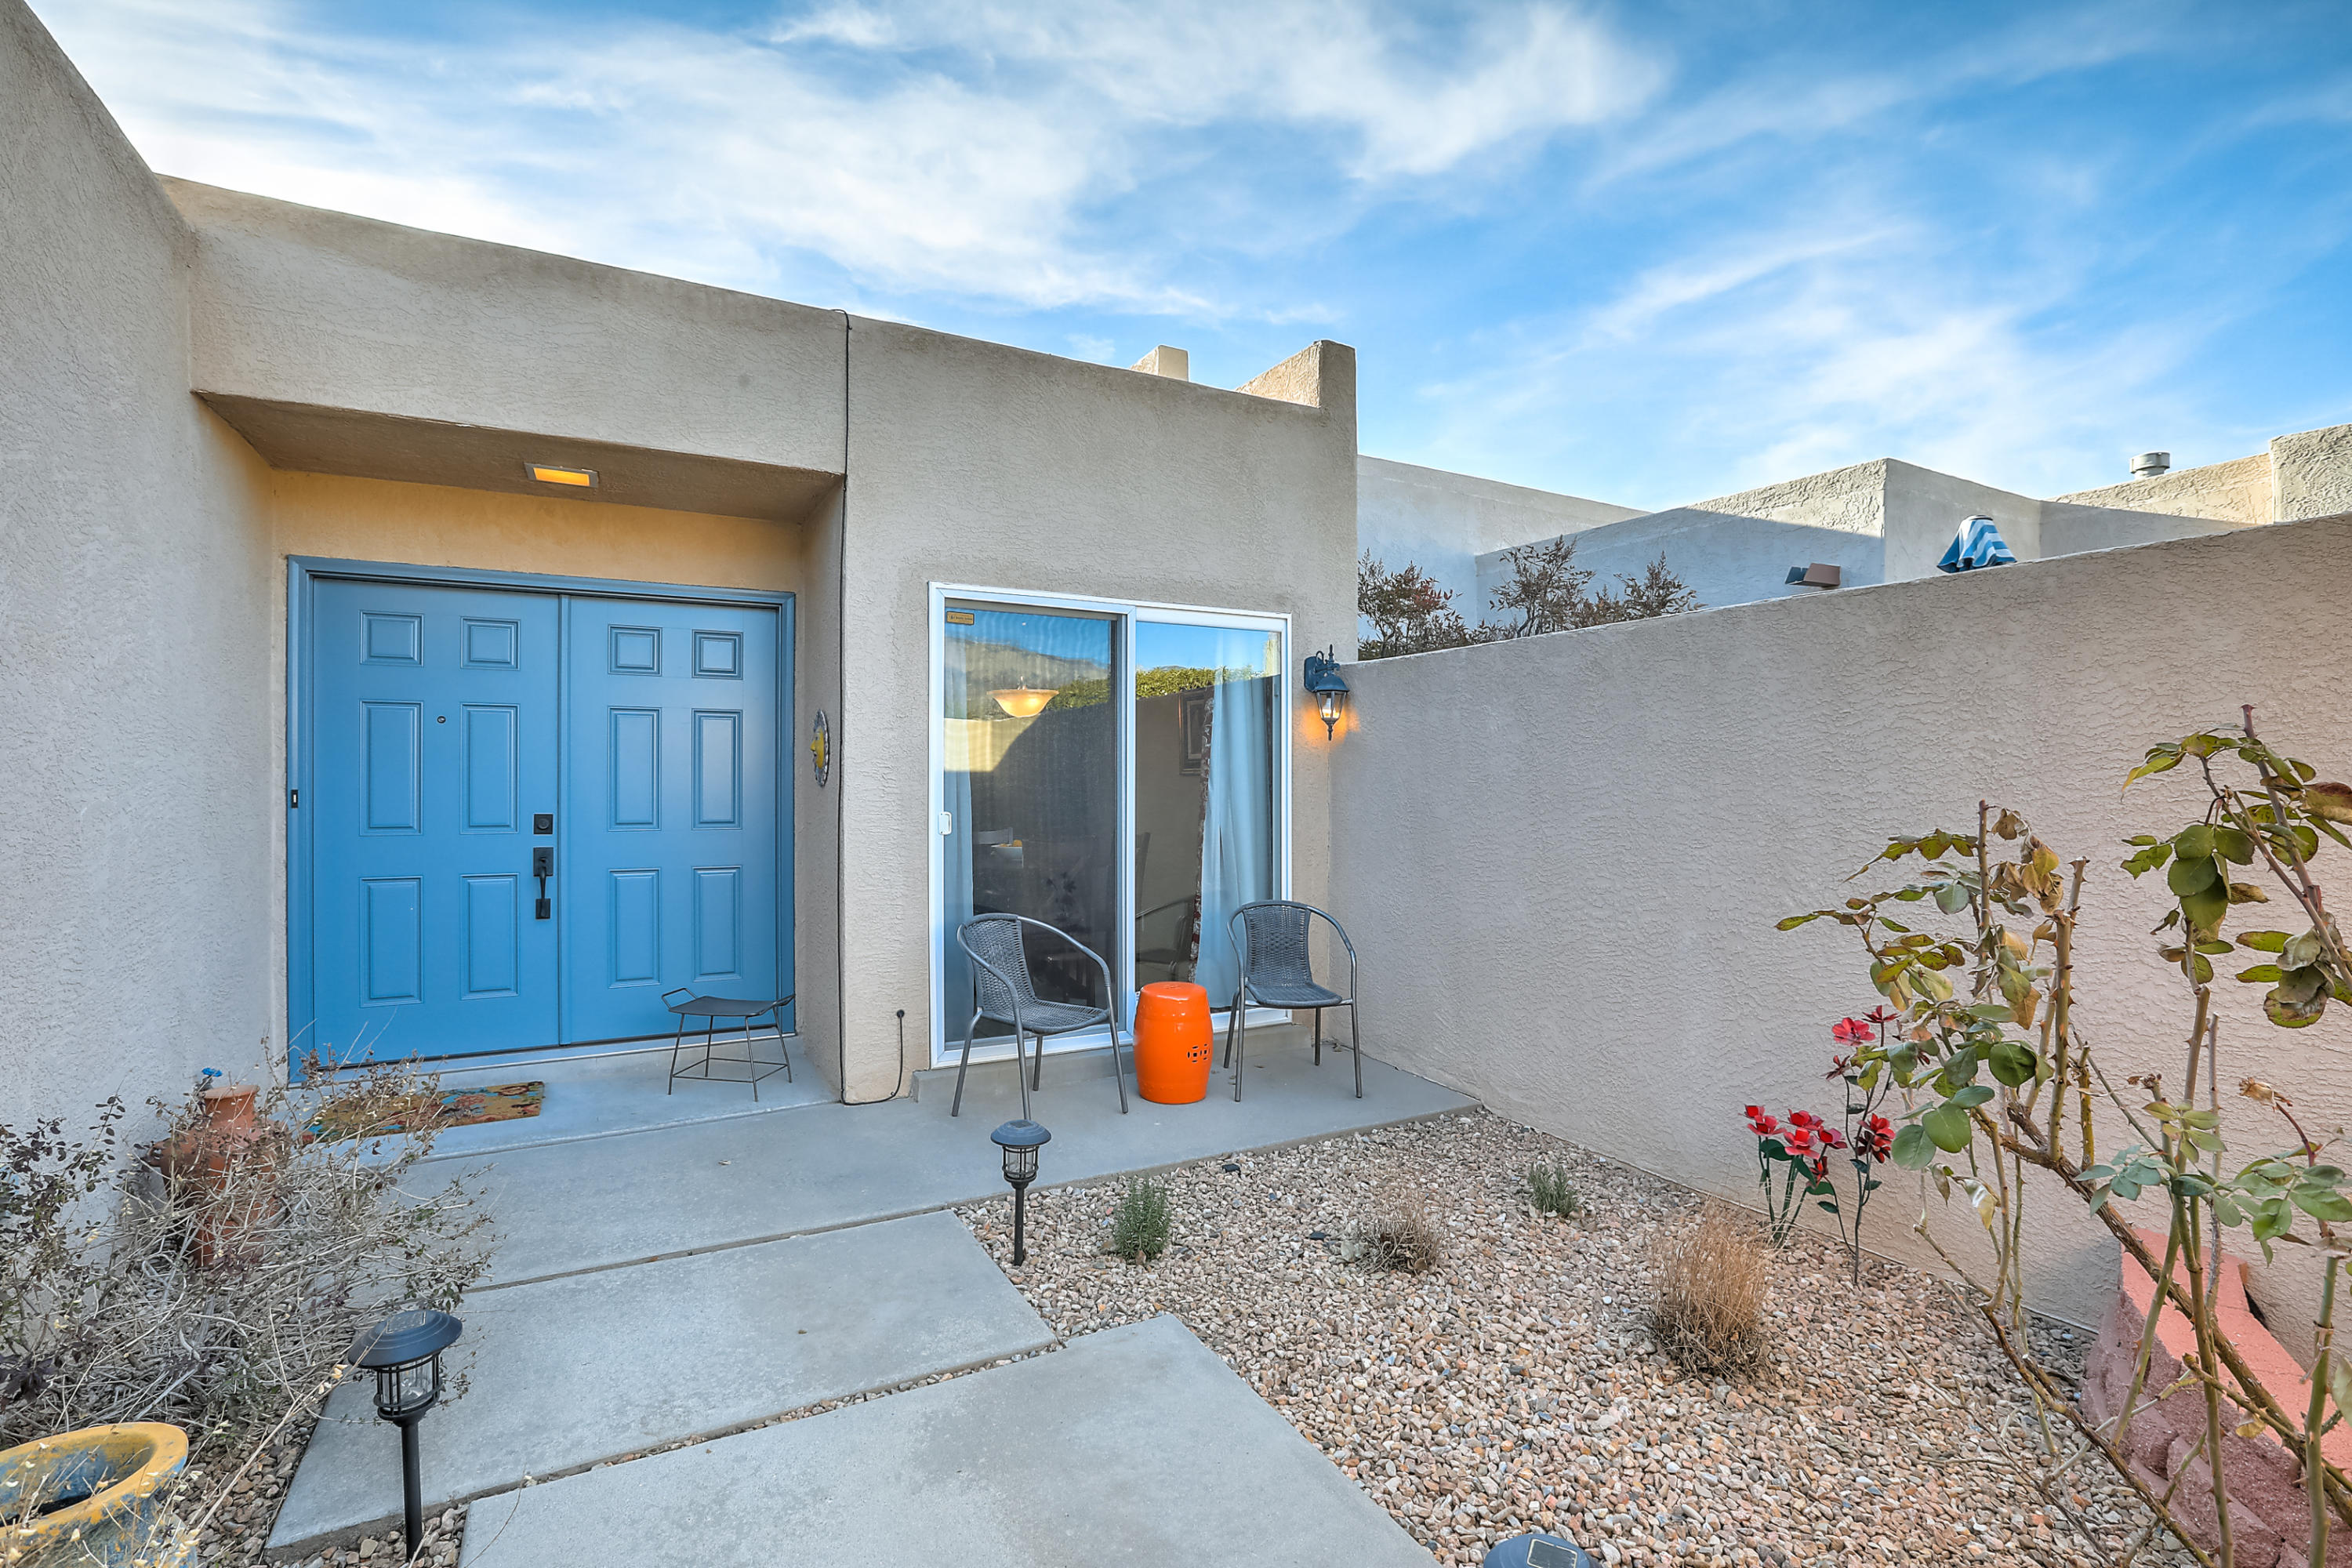 Located in the coveted Bear Canyon neighborhood, this turnkey Mossman townhome embodies urban living at its finest. Walk to shops and restaurants or enjoy your morning coffee on the patio with gorgeous mountain views. The open floor plan is appointed with high ceilings and a wood burning fireplace; teeming with natural light. The luxurious master suite has french doors, patio access, dbl vanities and large walk in closet. A neutral color scheme allows for personalization. The second bedroom is private with a large window and dbl closets. Established, low maintenance landscaping. Other upgrades include designer tile, refrigerated air, stainless steel appliances, Pella windows and doors, a NEW TPO roof, newer water heater, oversized finished garage with epoxy floors and so much more!